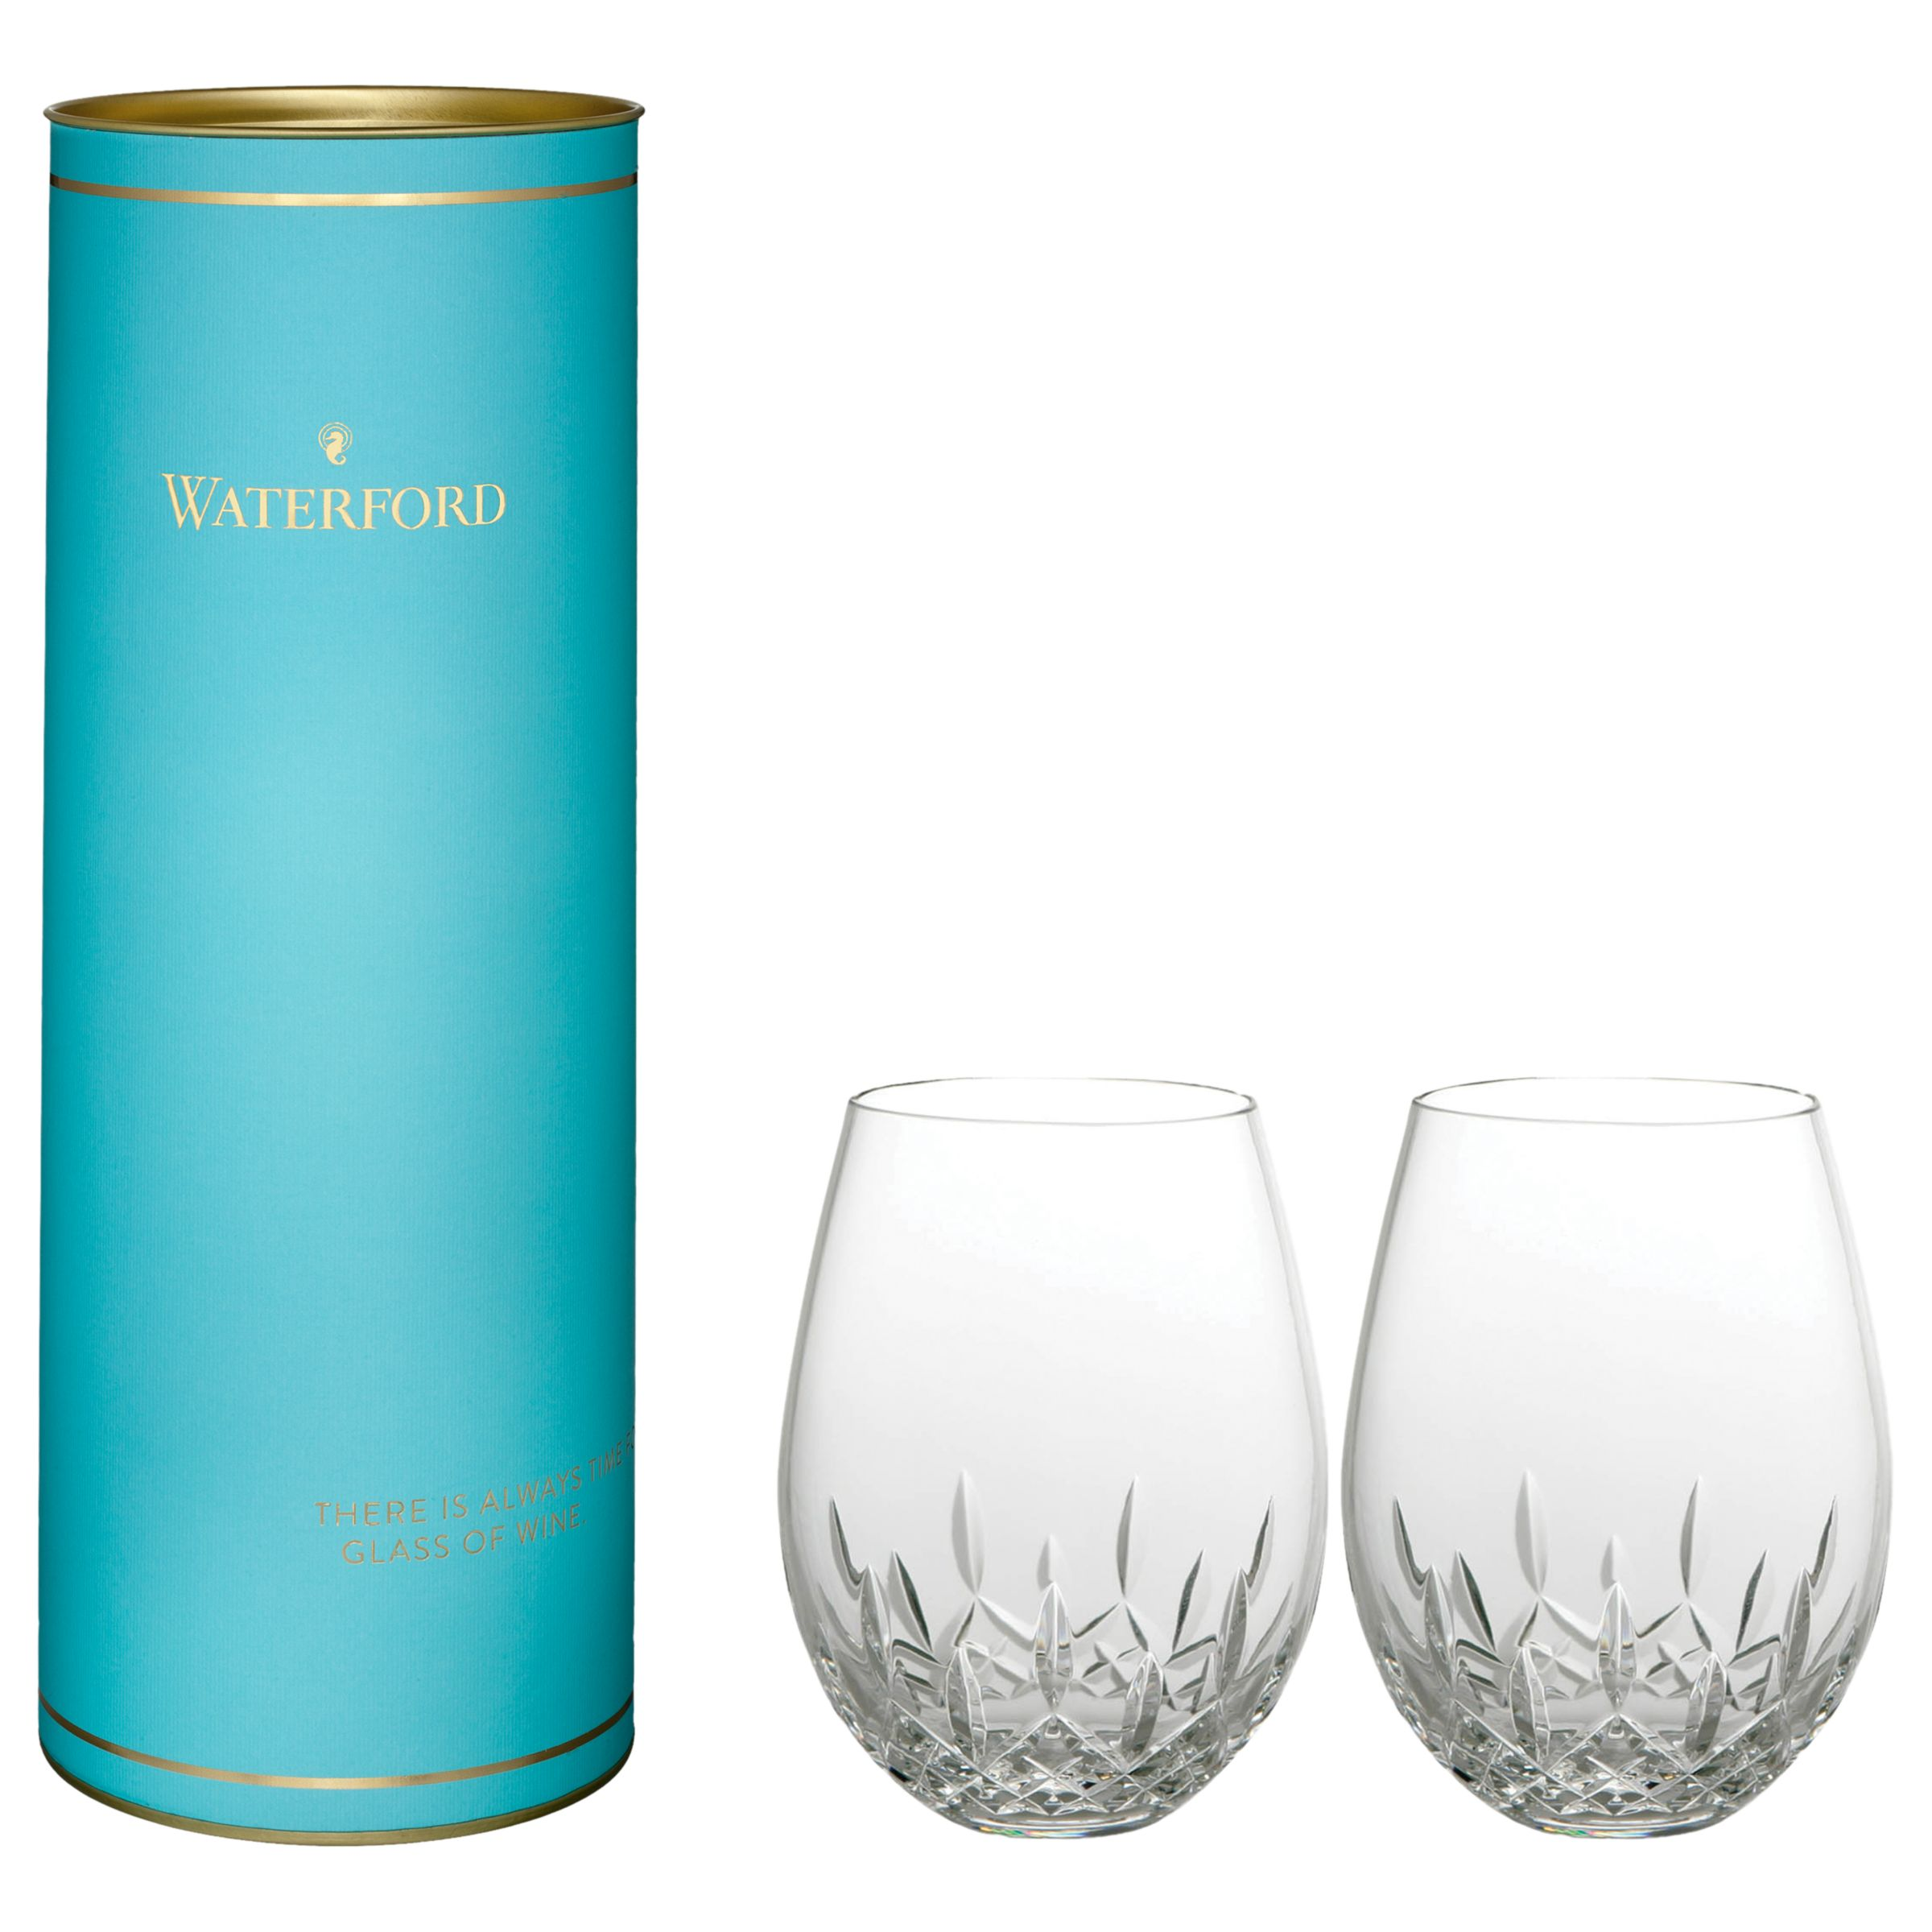 Waterford Waterford Giftology Lismore Nouveau Stemless Red Wine Glasses, Set of 2